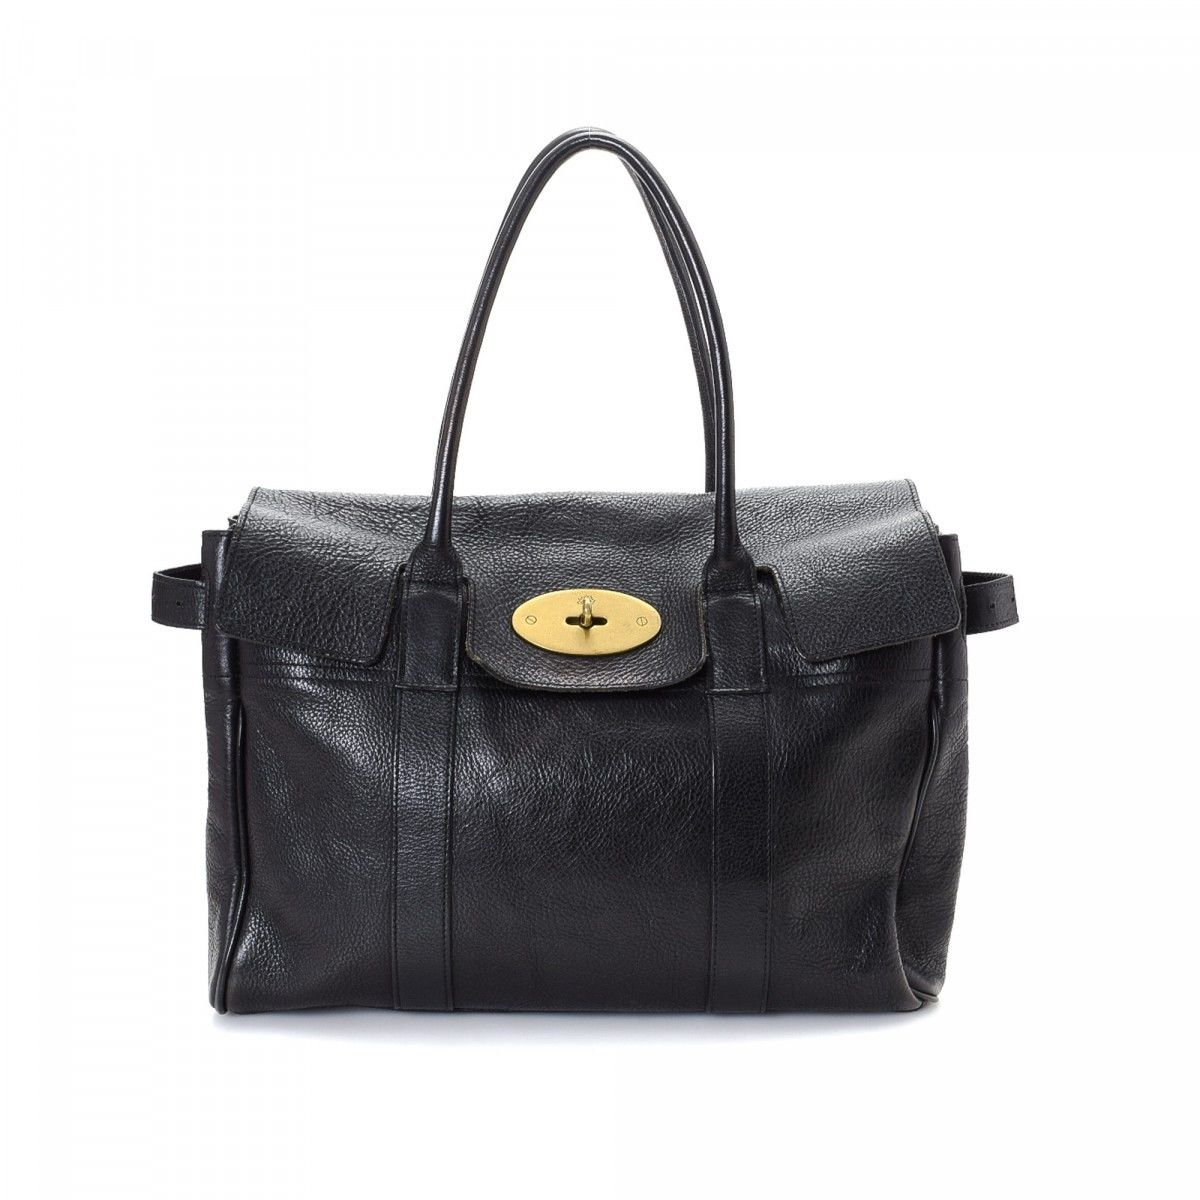 Mulberry Pre-owned - Navy Leather Handbag Bayswater